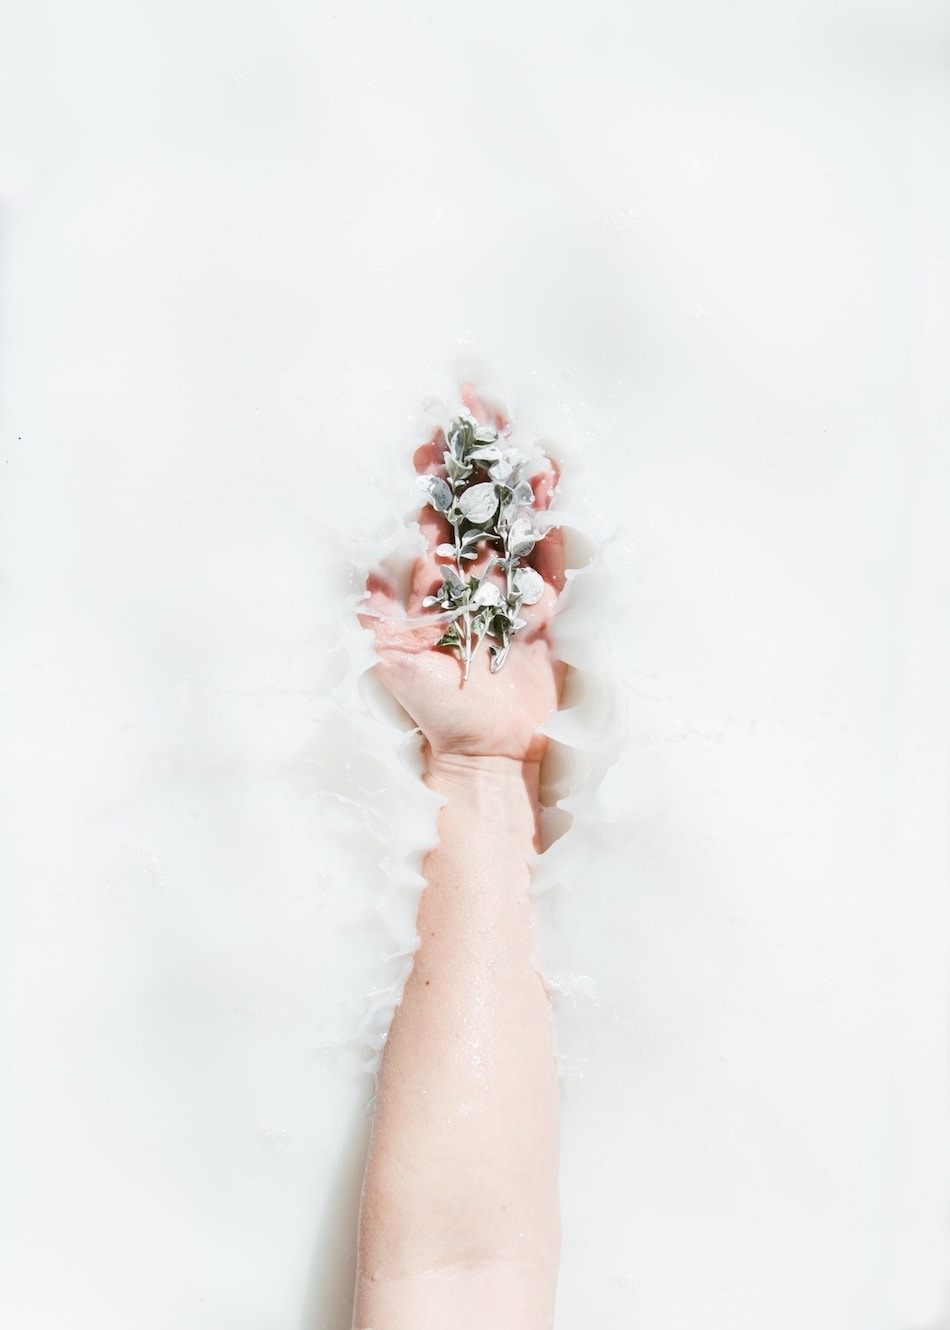 hand holding plant in milky water